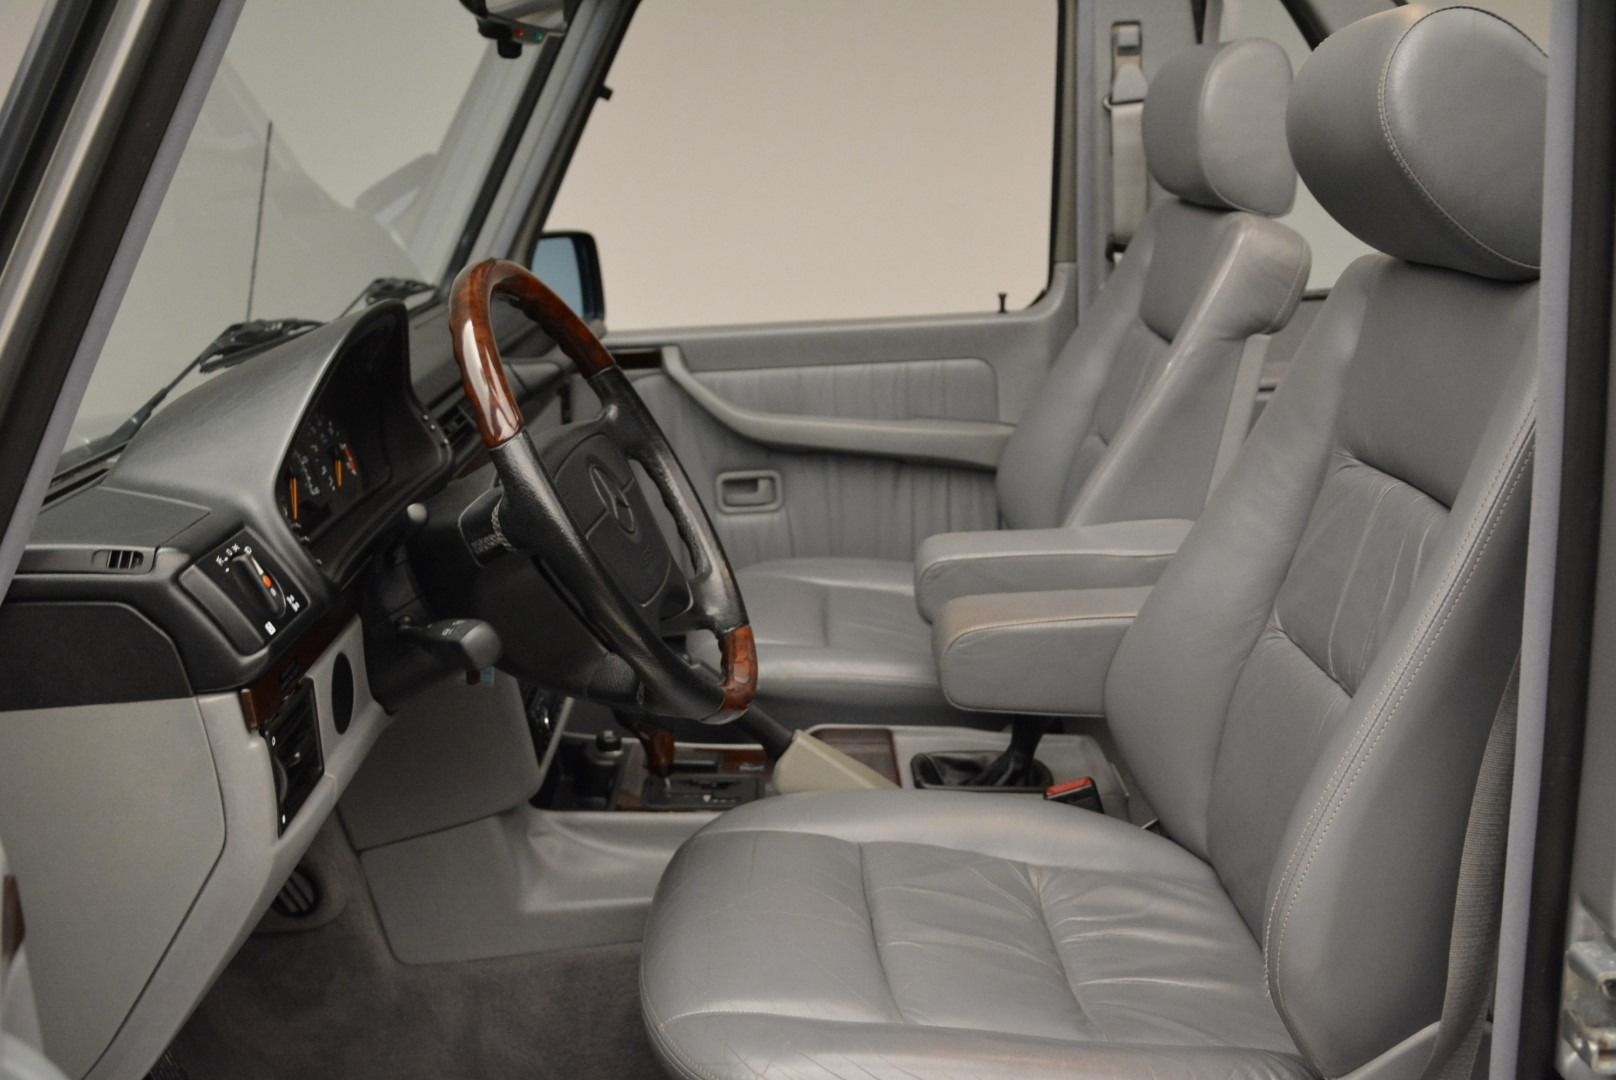 Used 1999 Mercedes Benz G500 Cabriolet For Sale In Greenwich, CT 1961_p23